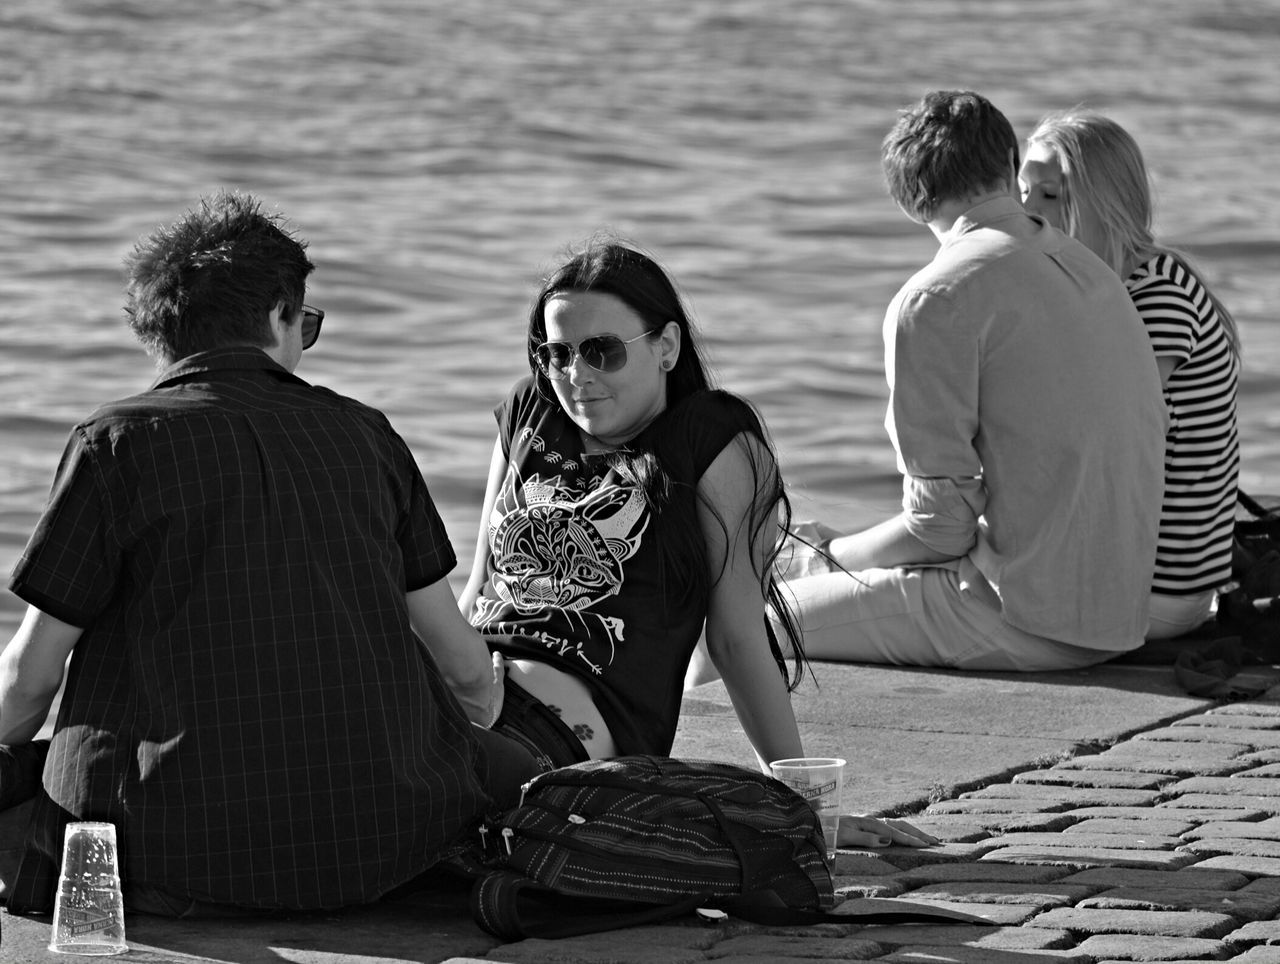 sitting, togetherness, leisure activity, real people, casual clothing, women, men, bonding, day, outdoors, young women, lifestyles, water, two people, full length, young adult, friendship, nature, adult, people